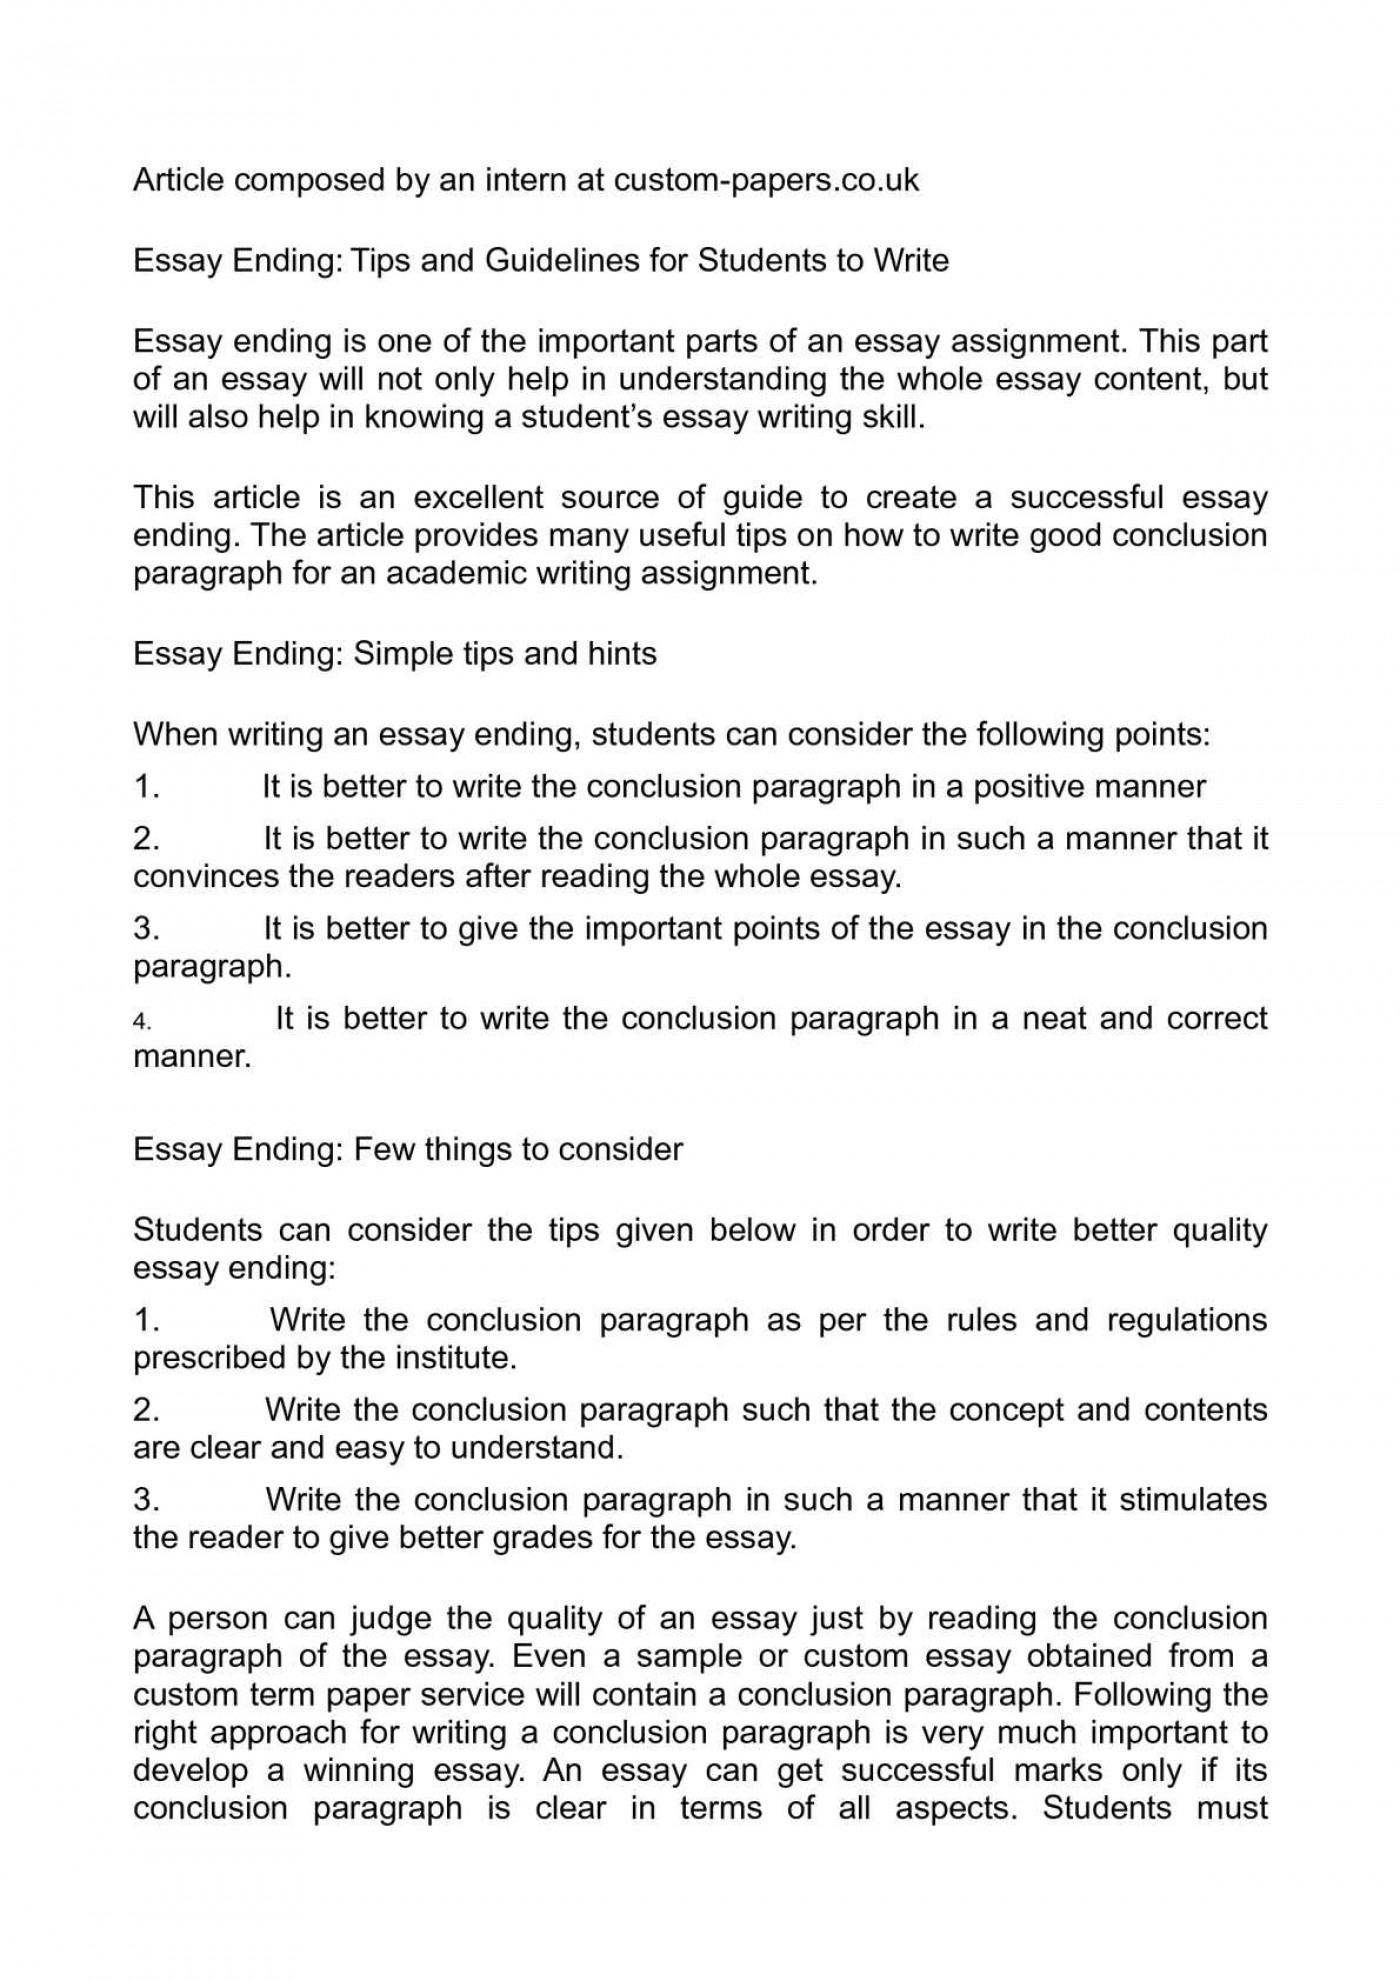 001 Parts Of An Essay Ending Tips And Guidelines For Students To Write Writing Persuasi Pdf Three Persuasive Stupendous Quizlet Worksheet 1400